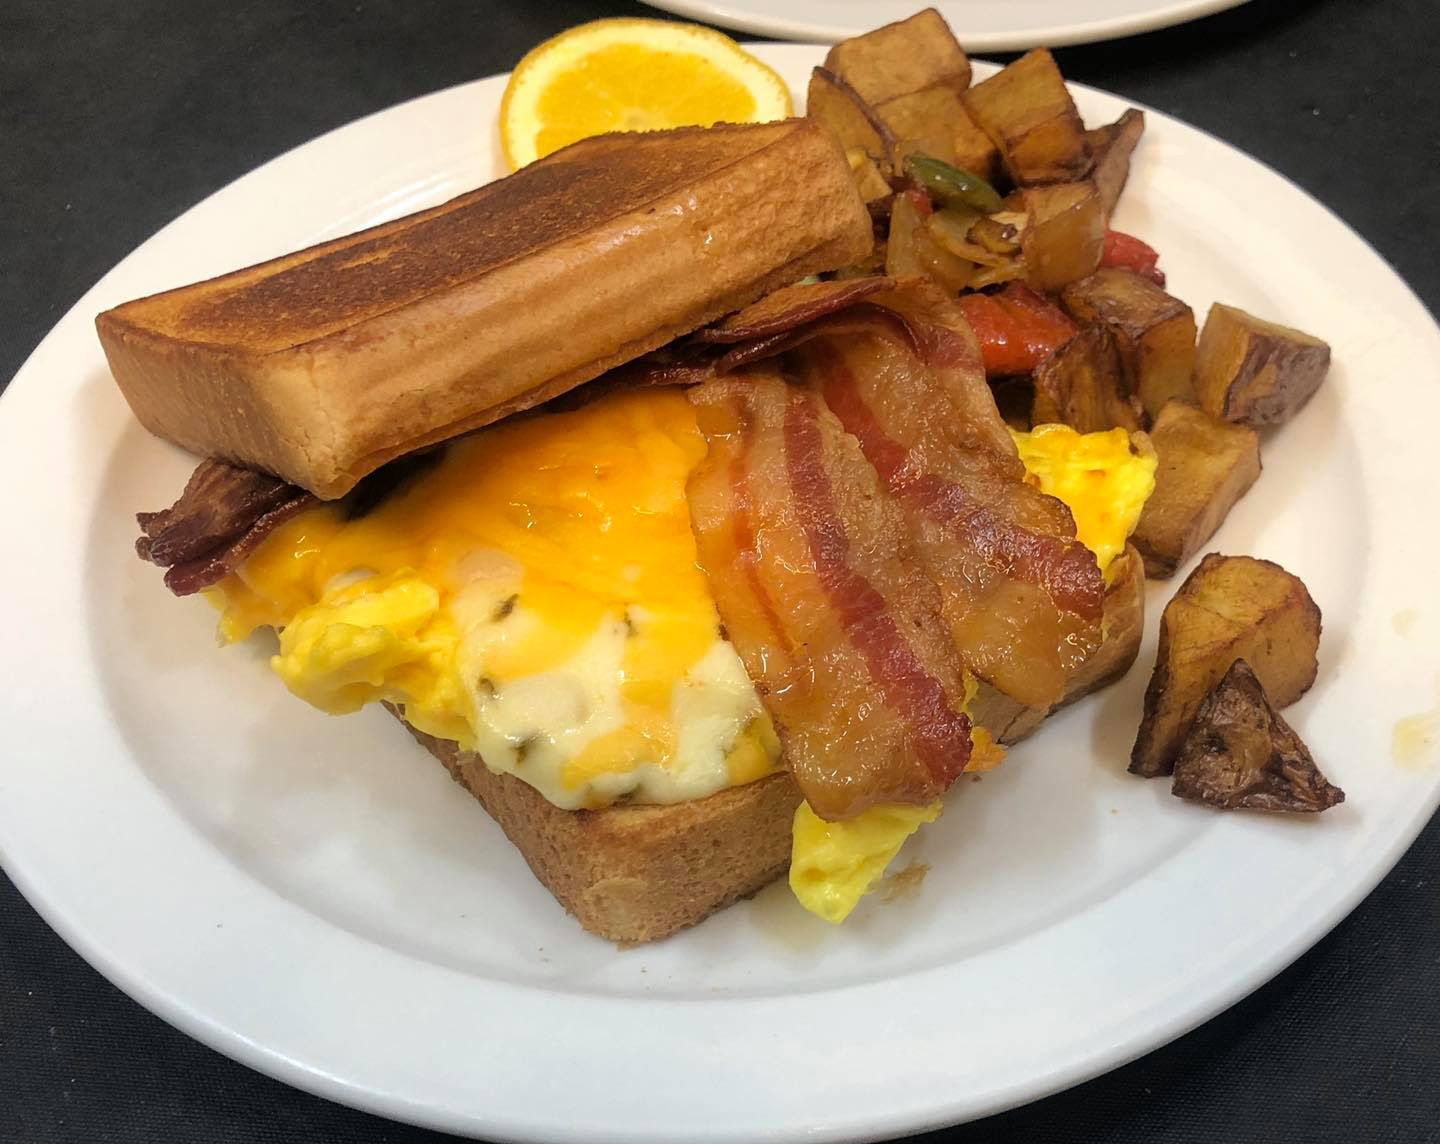 bacon, eggs, and cheese on toast with a side of home fries